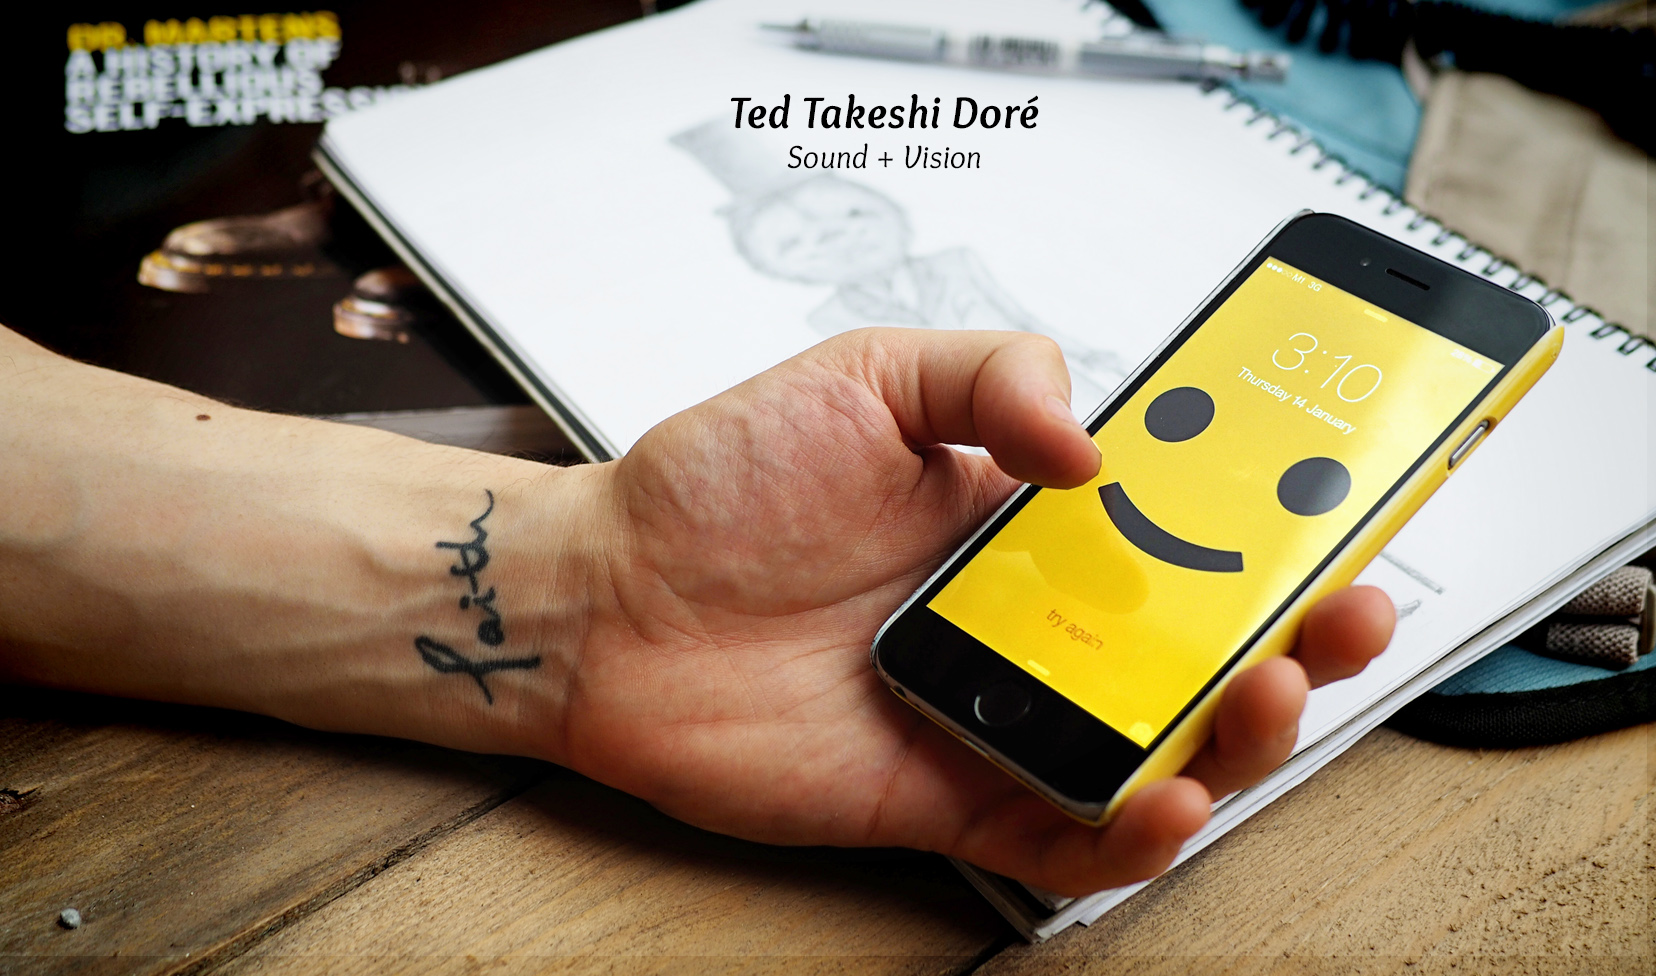 What's Your Story: Ted Takeshi Doré – Sound + Vision